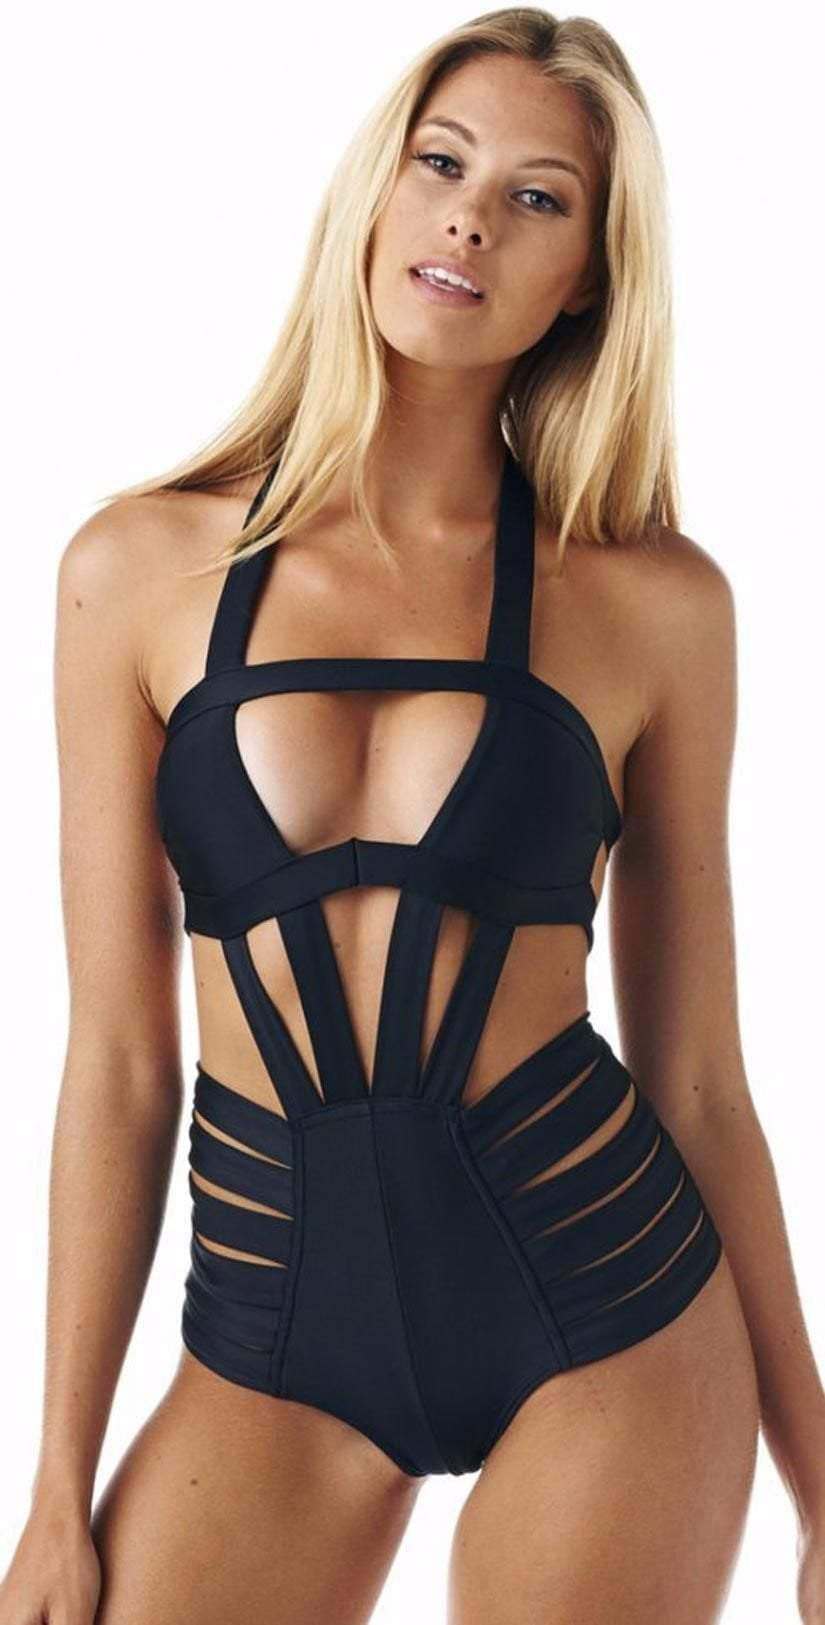 Montce Dunes Monokini in Black: